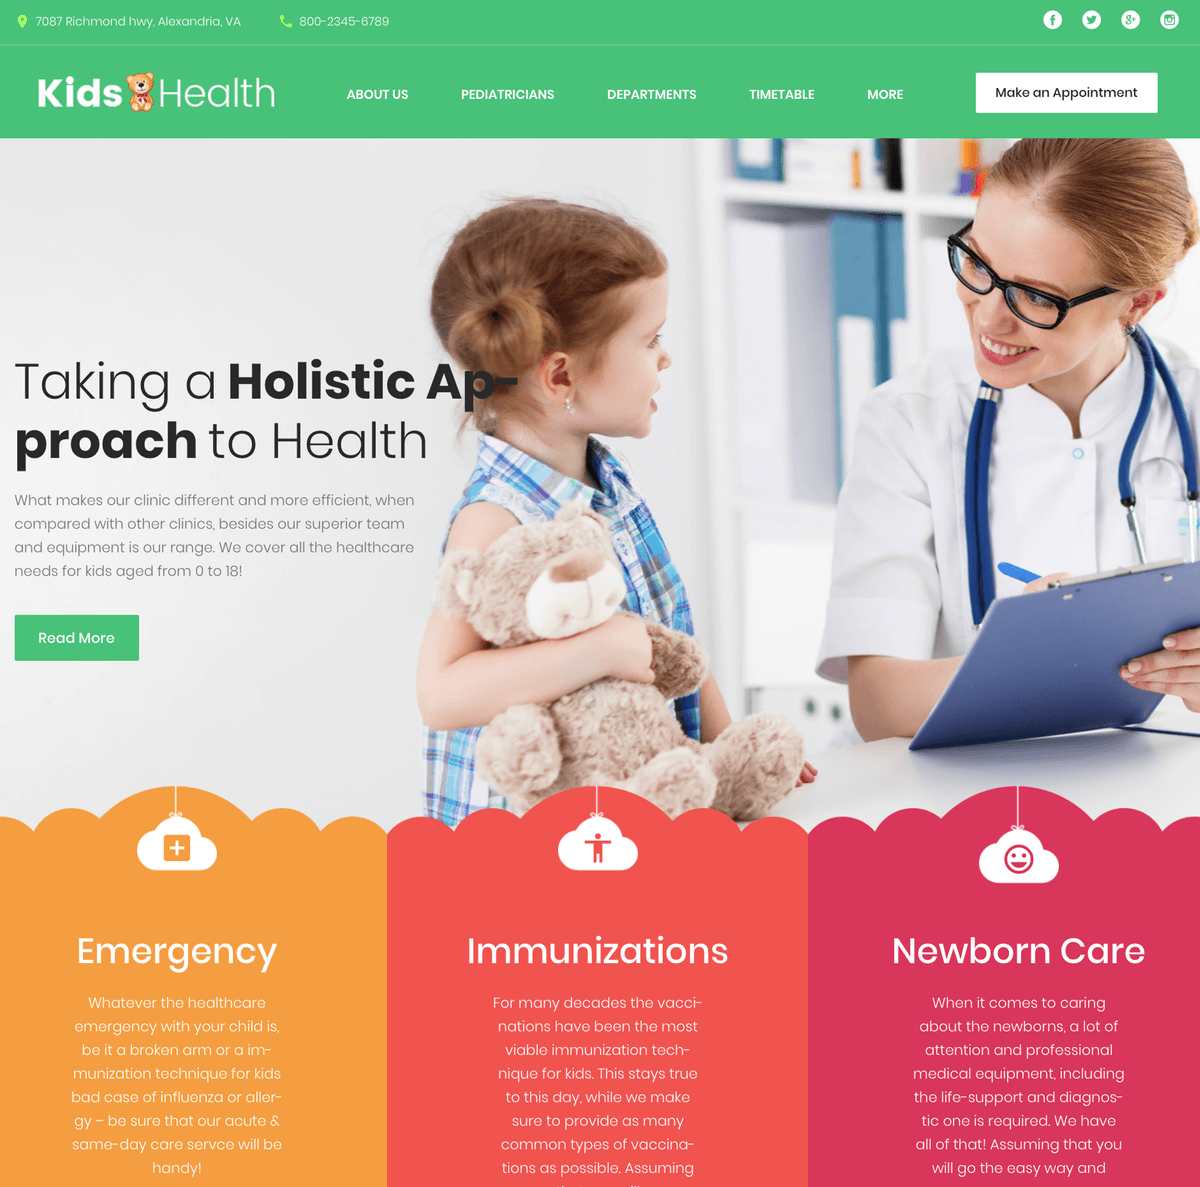 KidsHealth kids clinic WordPress theme